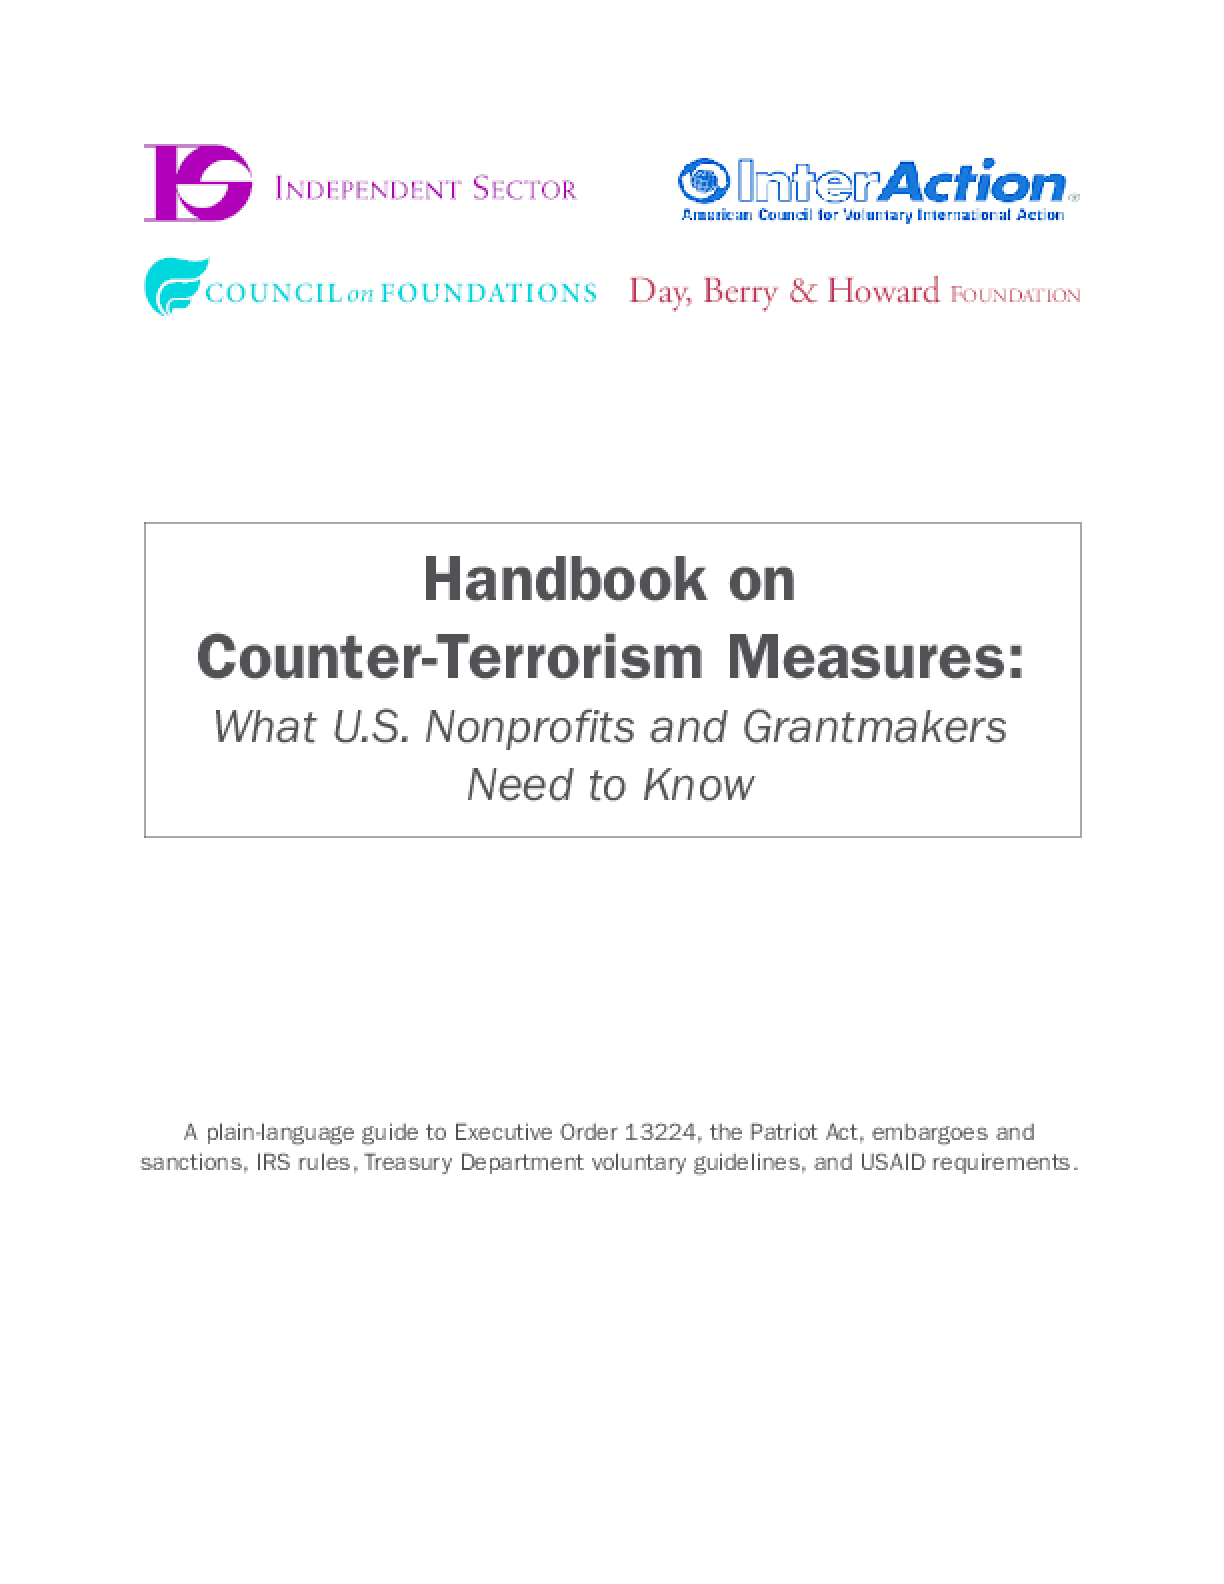 Handbook On Counter-Terrorism Measures: What U.S. Nonprofits and Grantmakers Need to Know